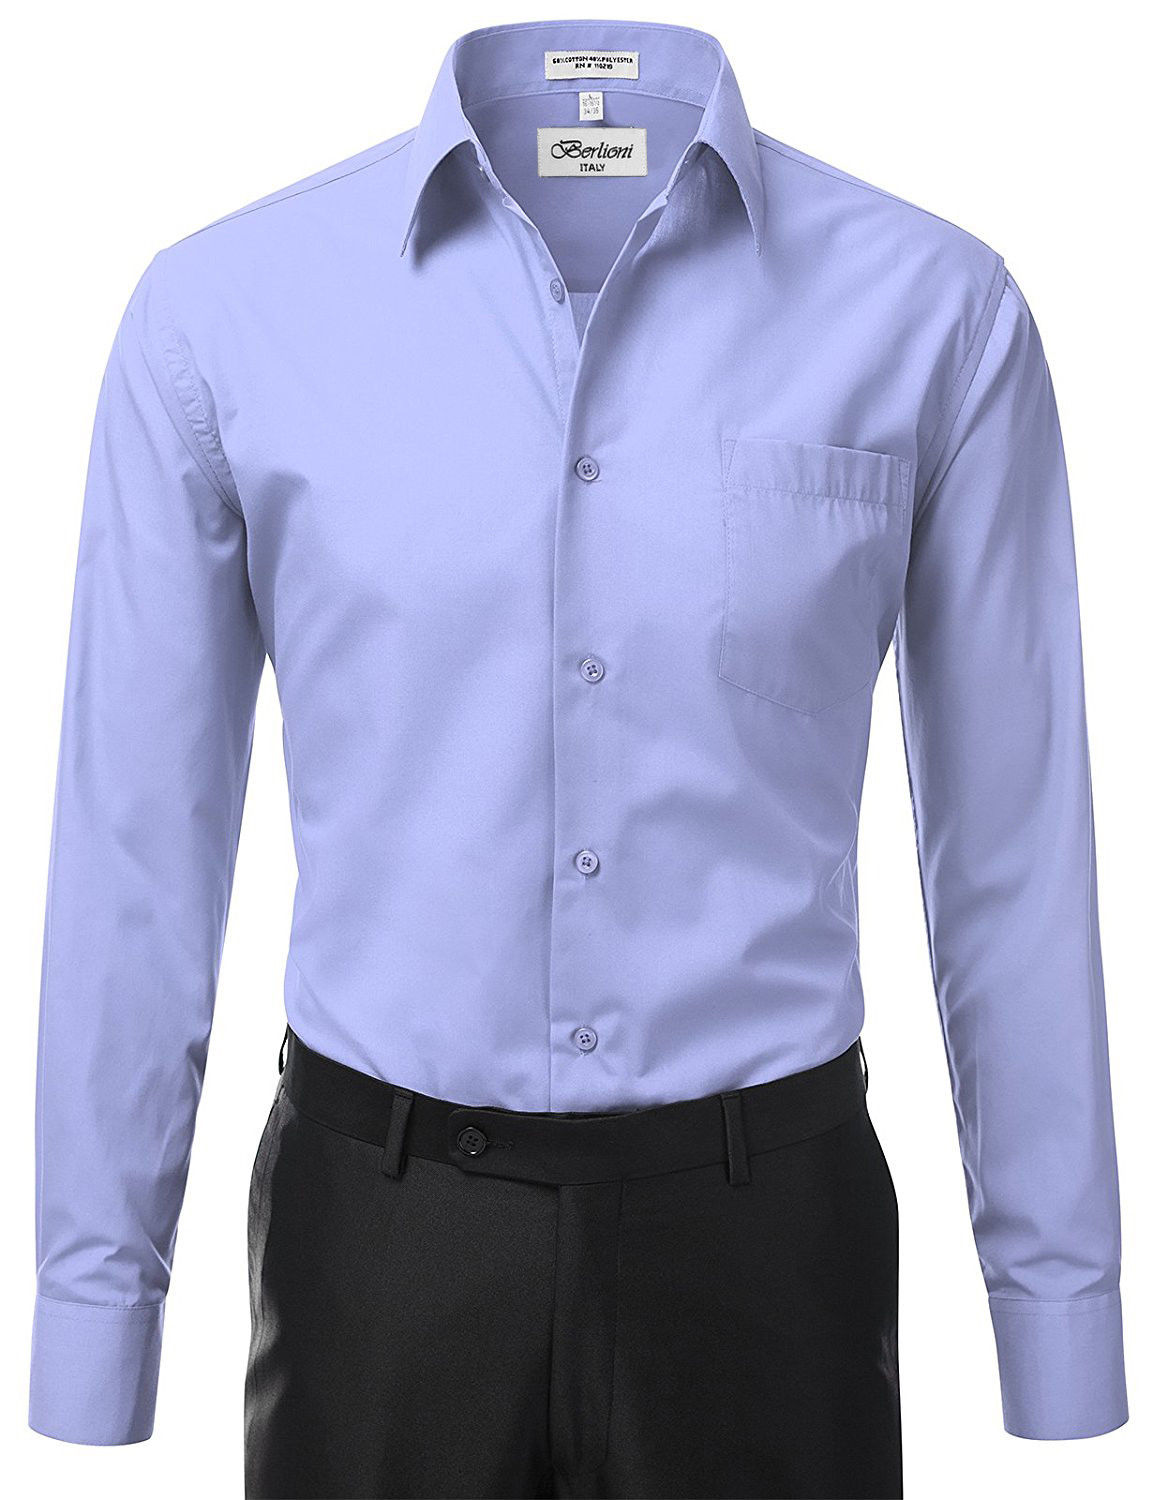 Berlioni-Italy-Men-039-s-Premium-Classic-French-Convertible-Cuff-Solid-Dress-Shirt thumbnail 16